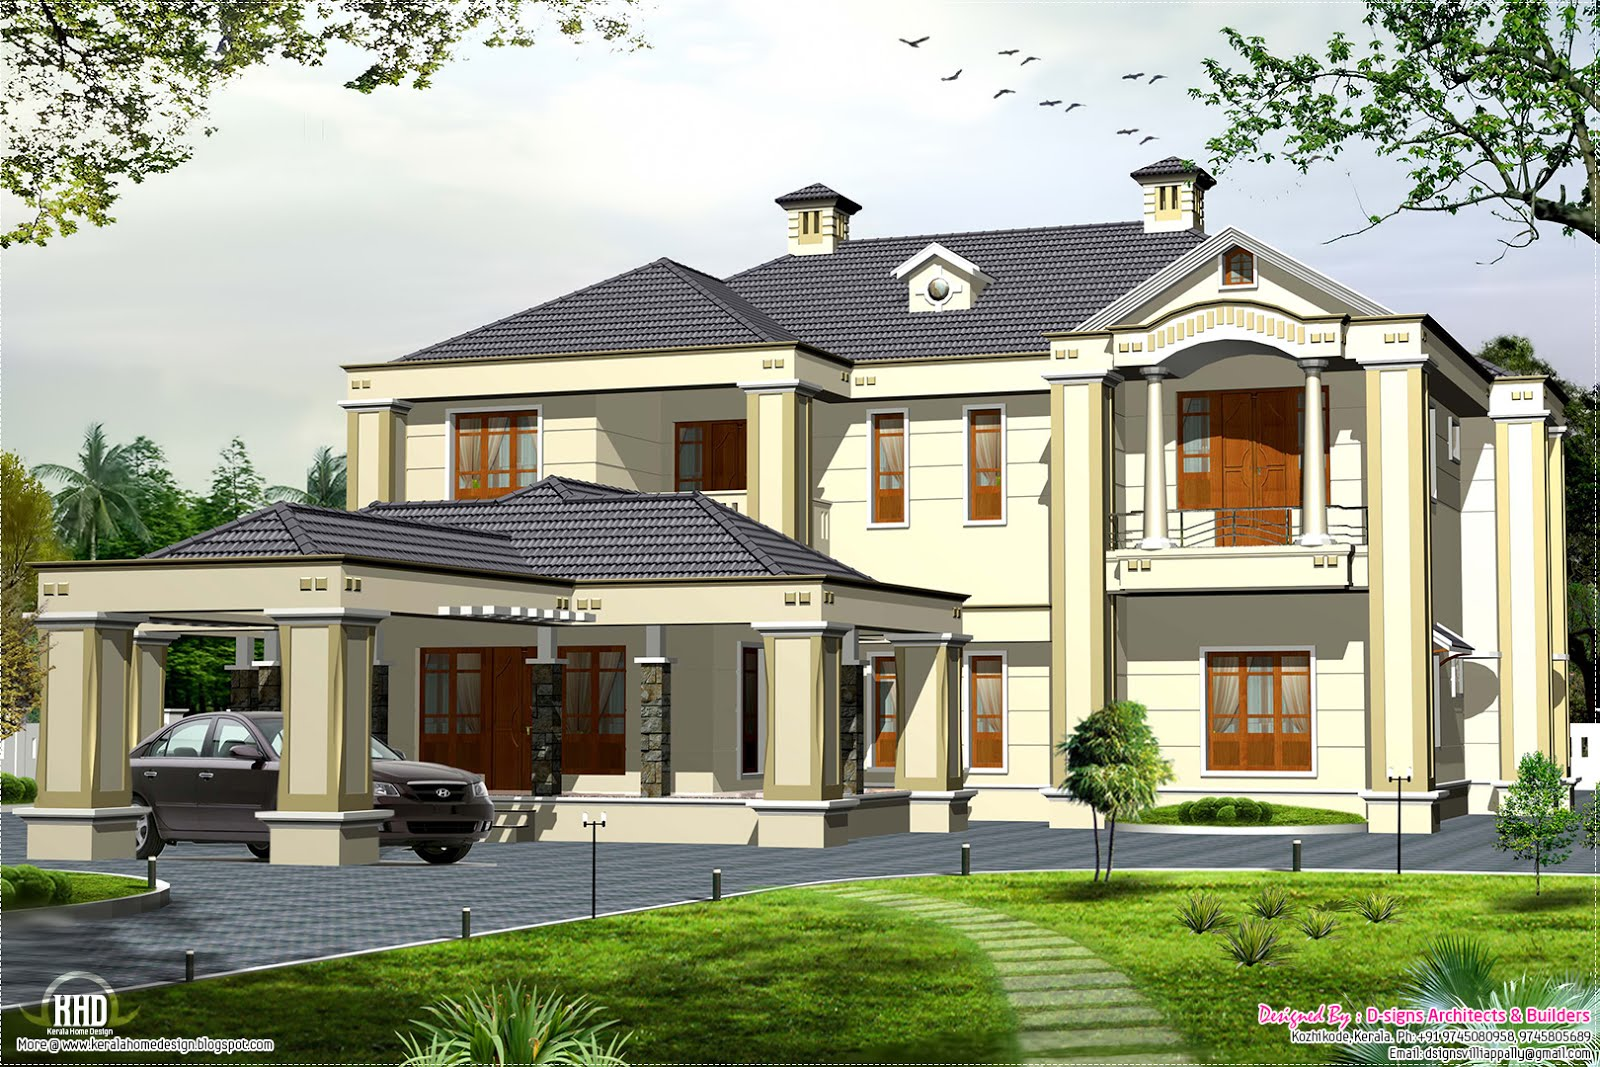 Colonial style 5 bedroom victorian style house enter for 5 bedroom house interior design